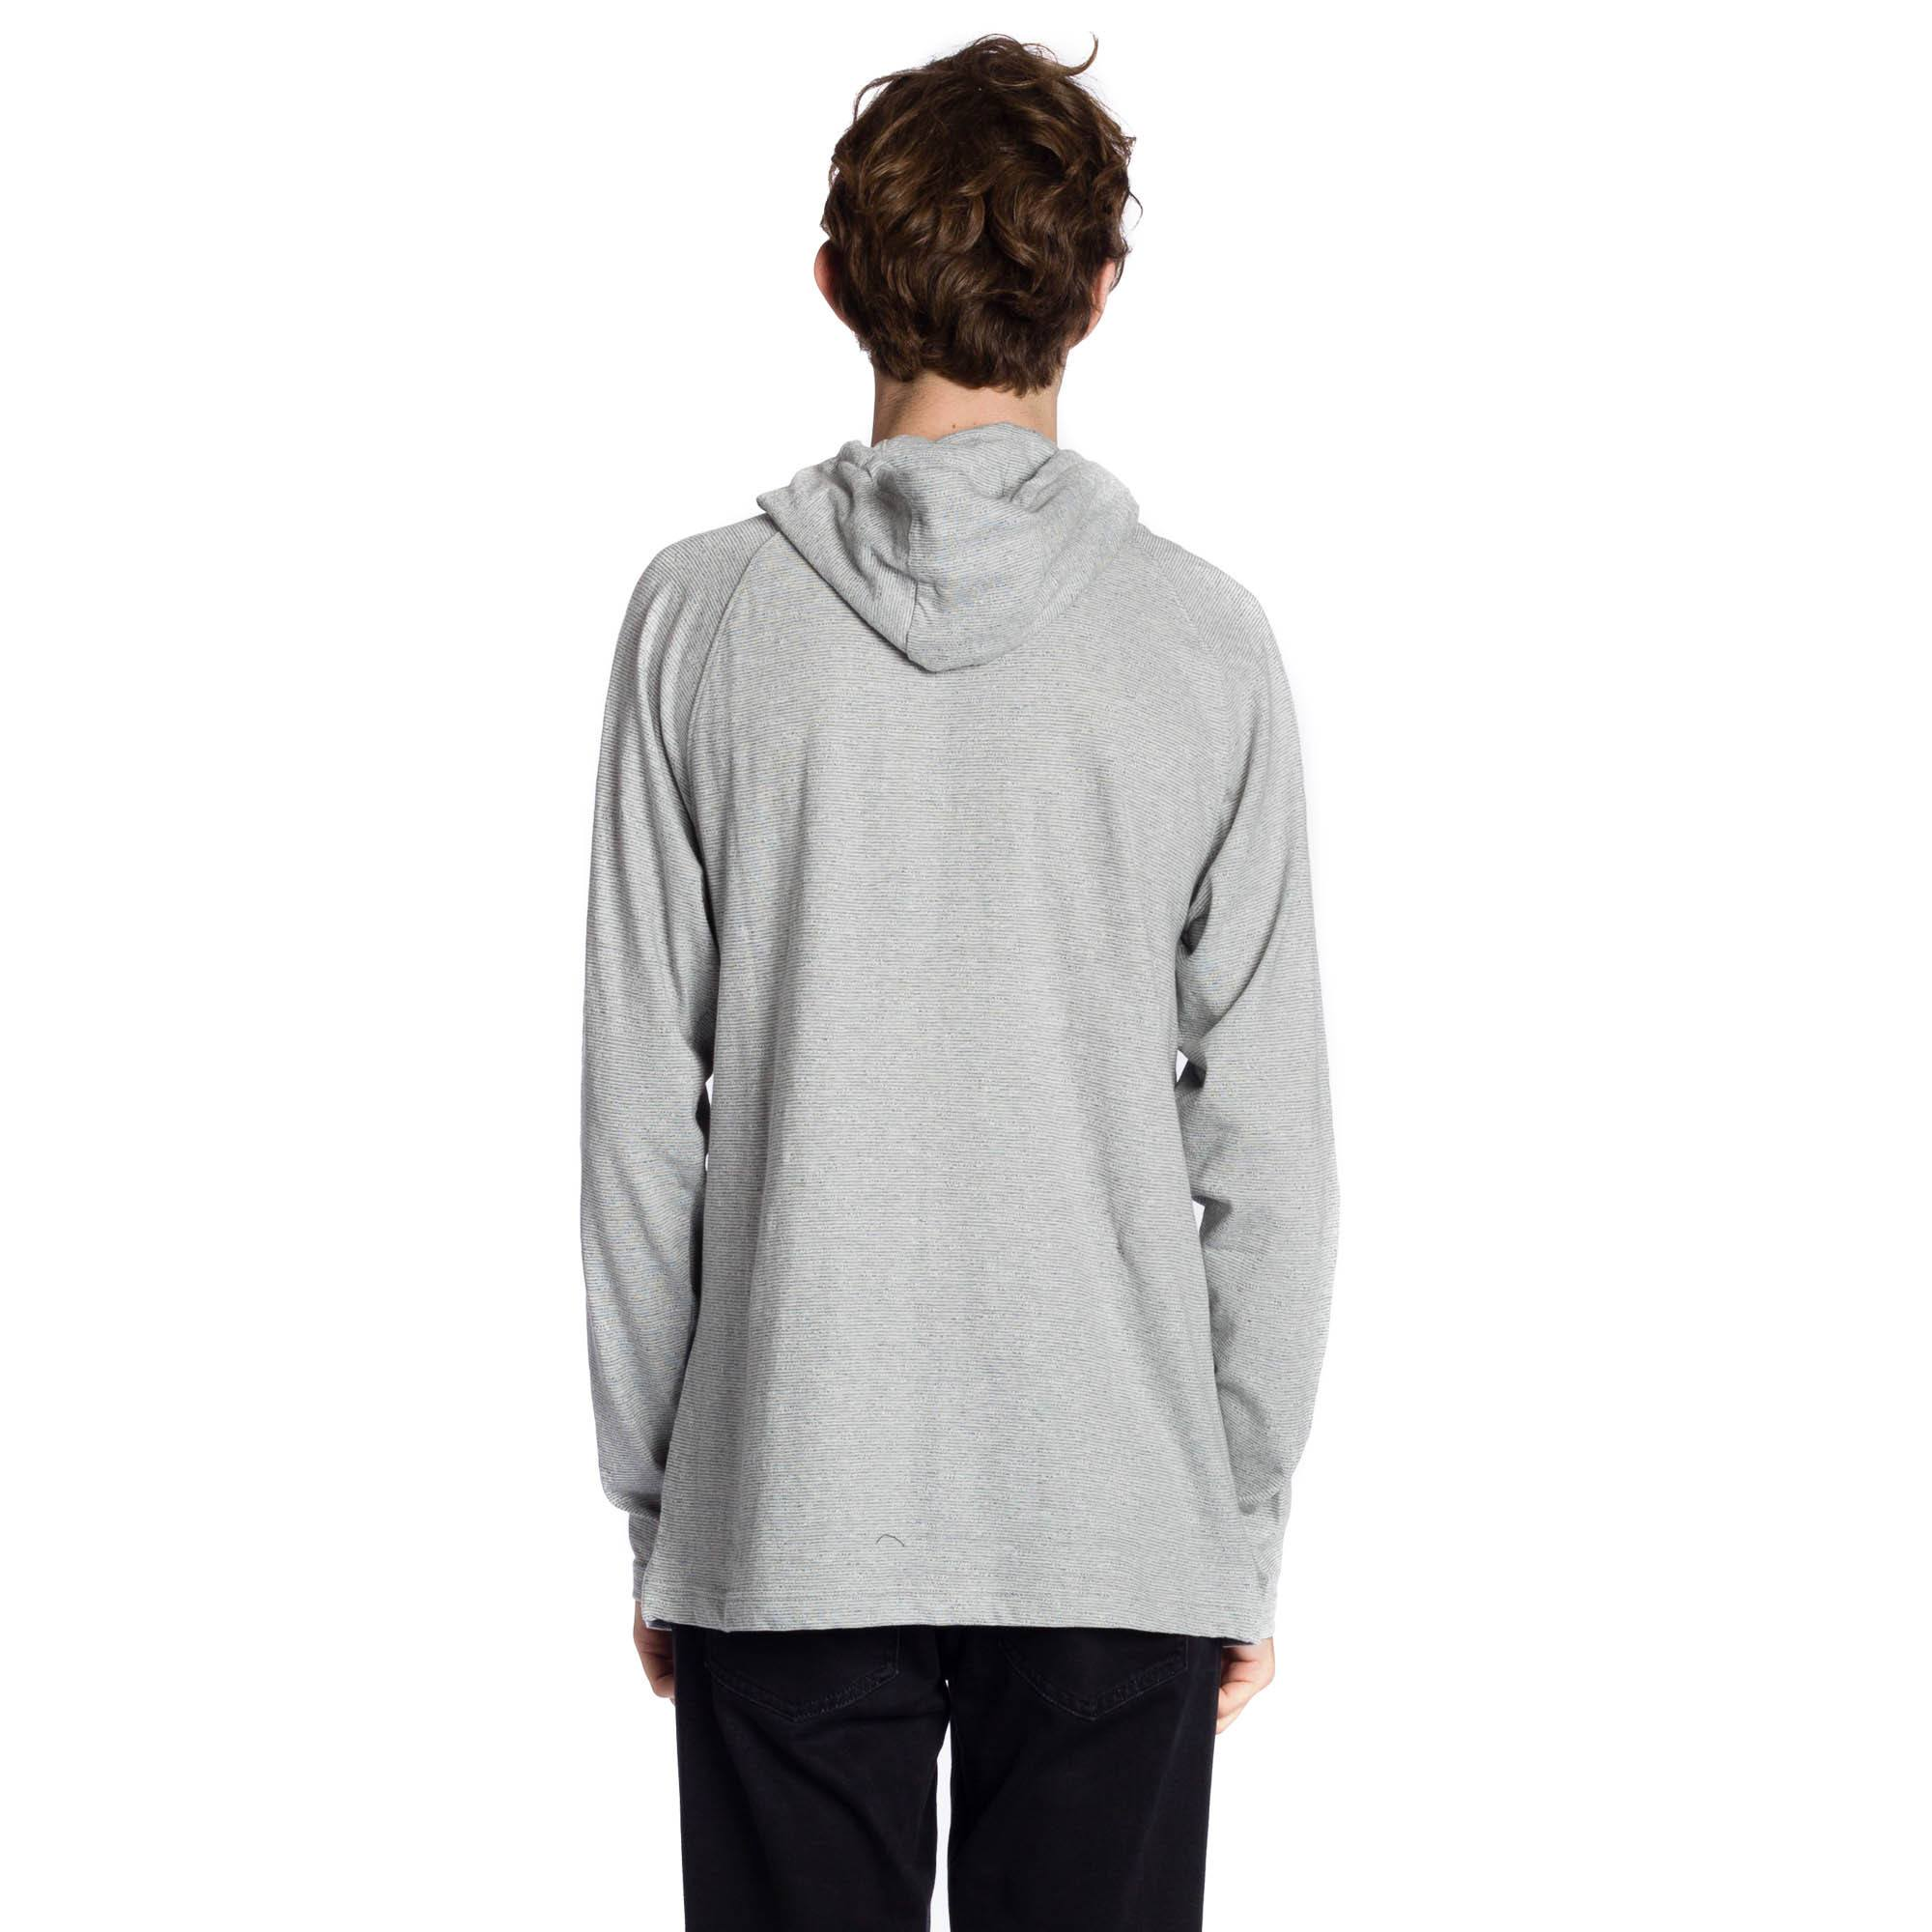 Bowie Hooded Pullover - Bone